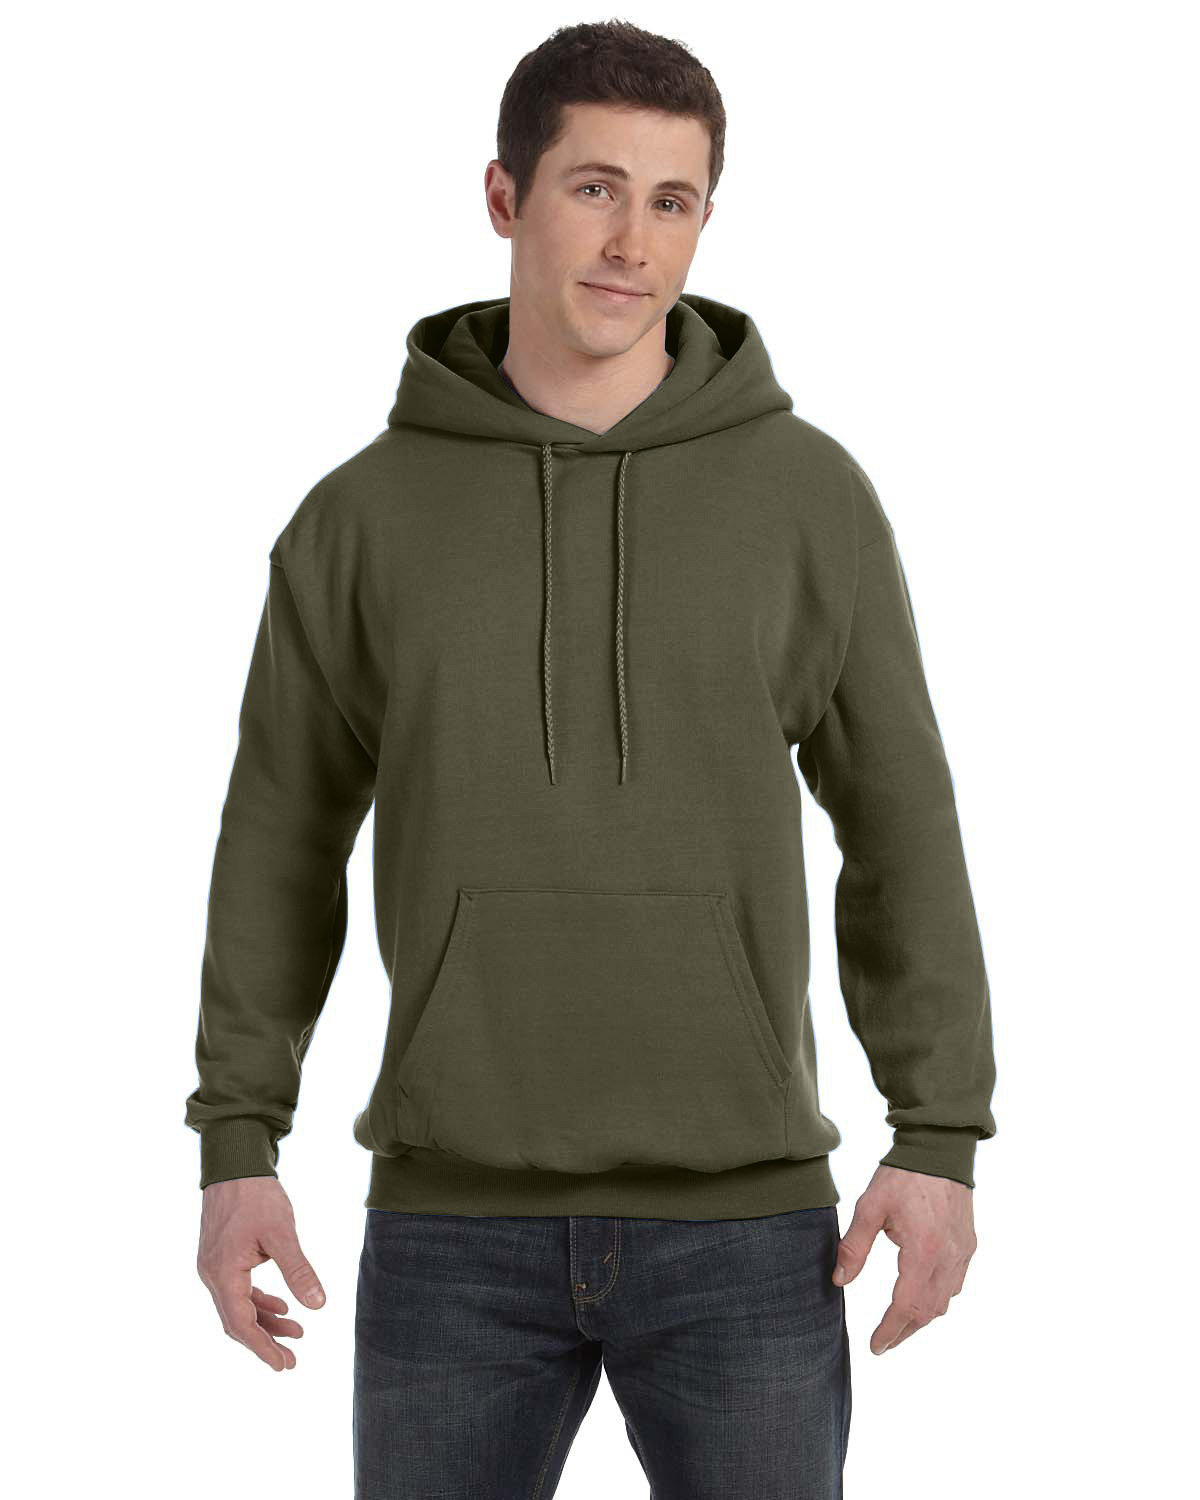 Hanes Unisex Ecosmart® 50/50 Pullover Hooded Sweatshirt FATIGUE GREEN